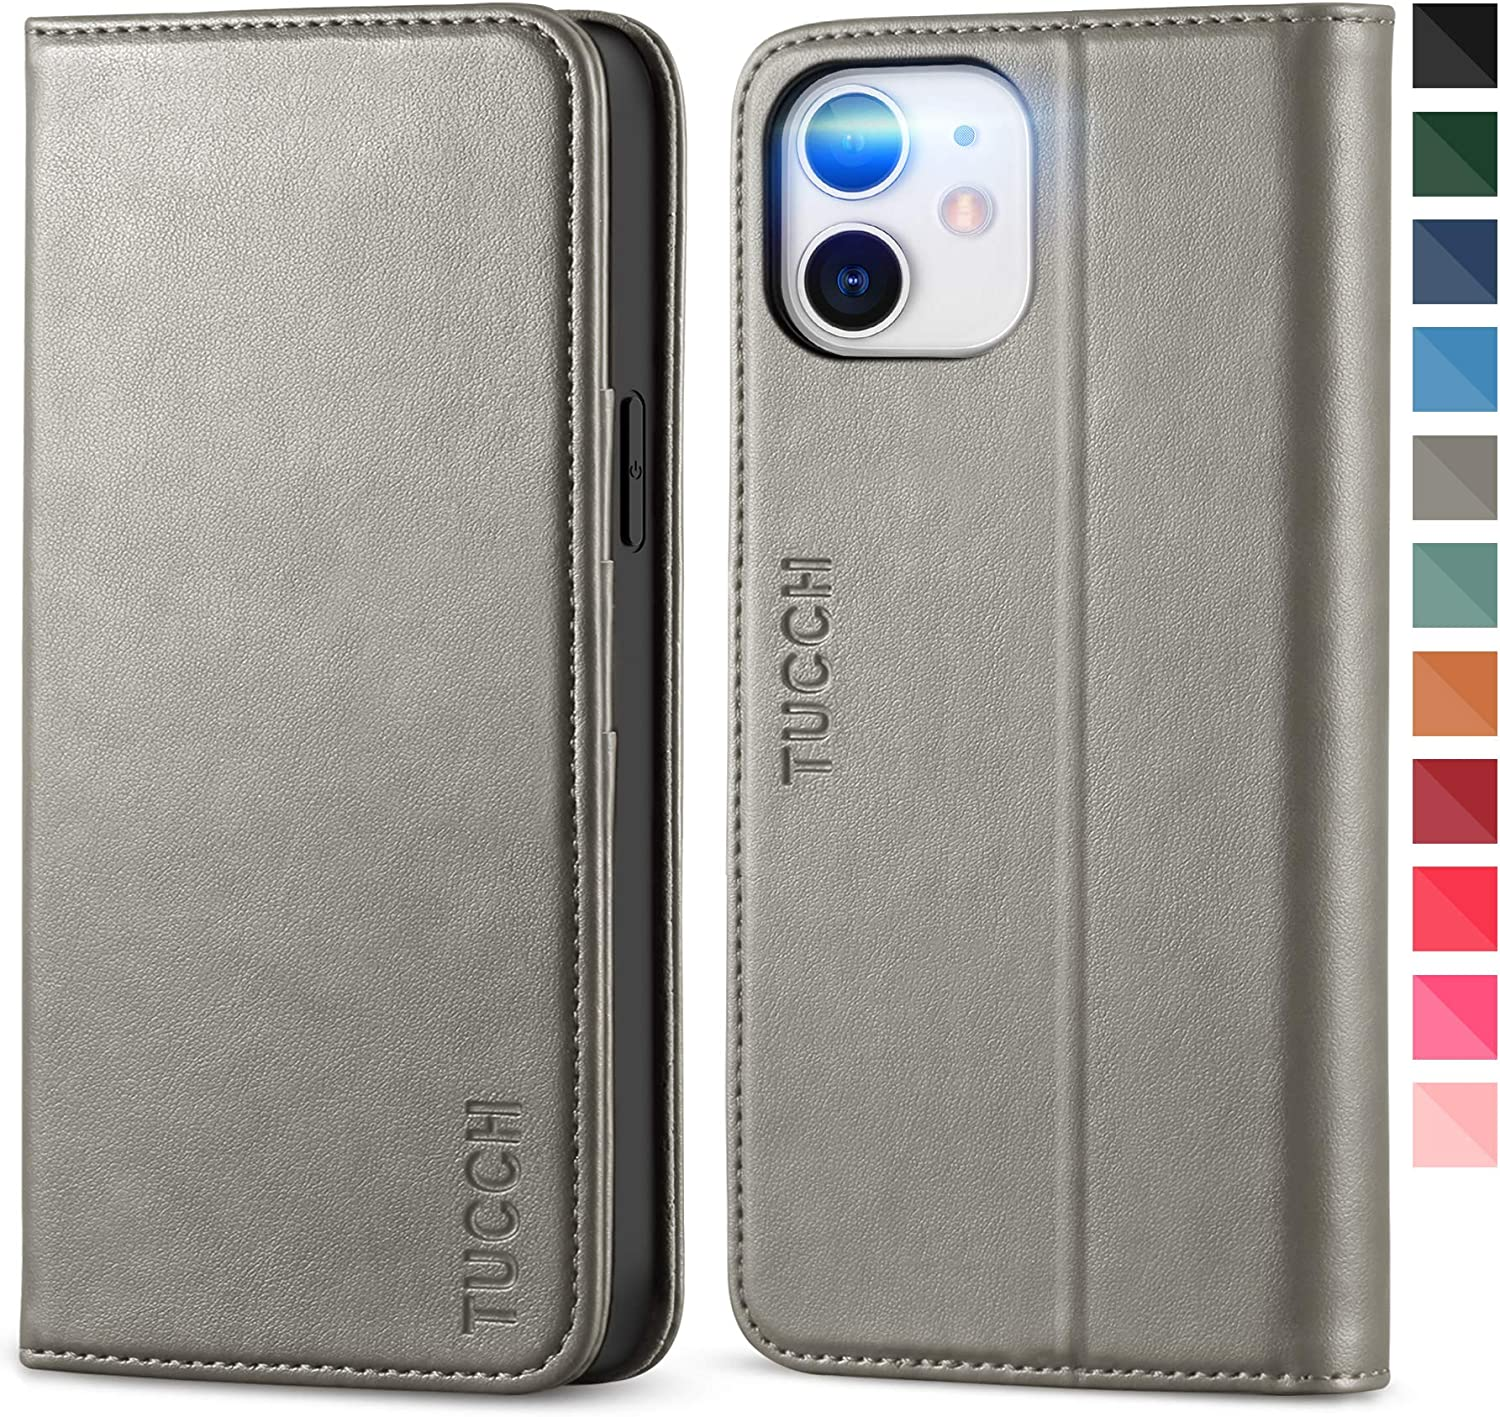 TUCCH Case for iPhone 12/iPhone 12 Pro 5G, PU Leather Flip Wallet, Stand Folio Cover with 3 Credit Card Slot [Soft TPU Protective Interior Case] Compatible with iPhone 12/iPhone 12 Pro 6.1-inch, Grey